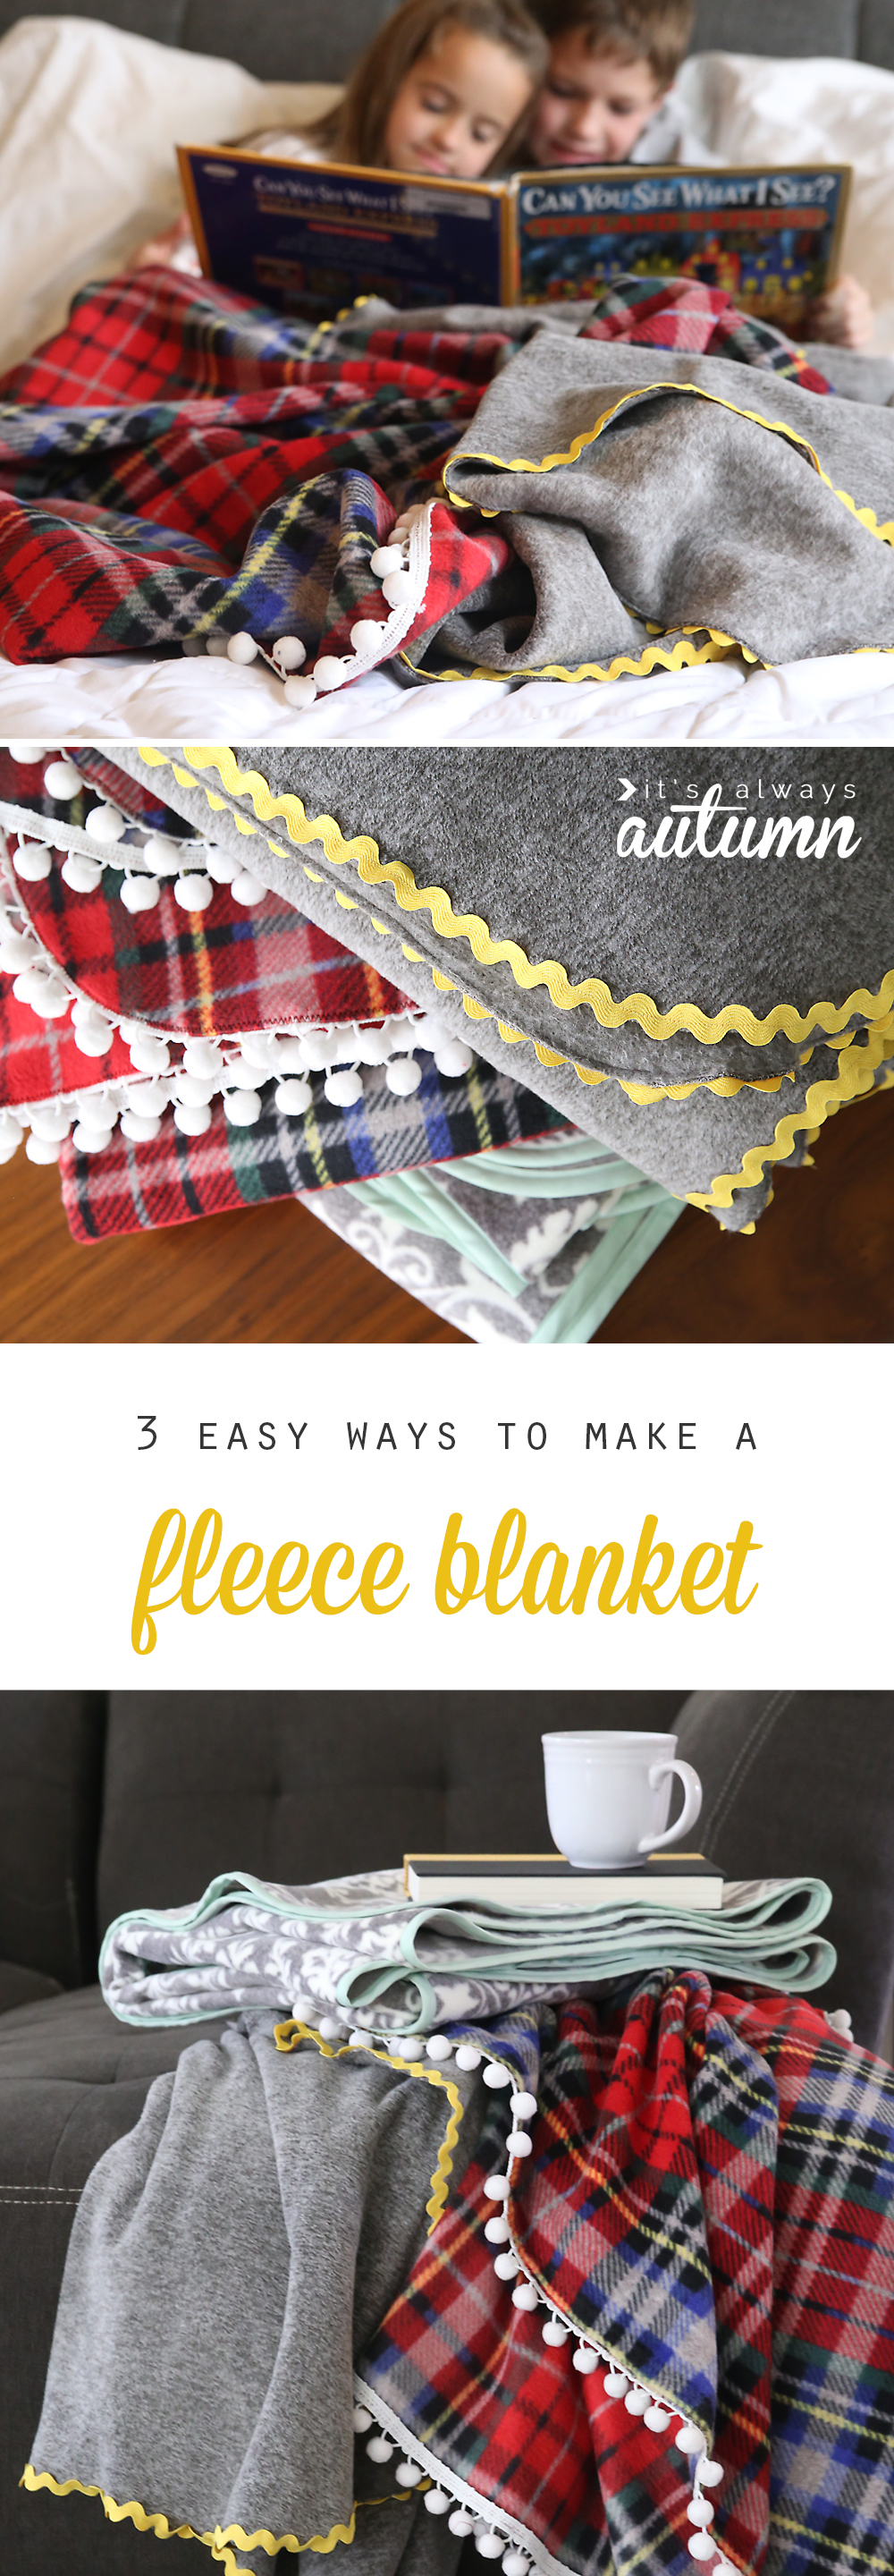 These DIY fleece blankets are gorgeous! How to make a fleece blanket. Great DIY Christmas or holiday gift idea!